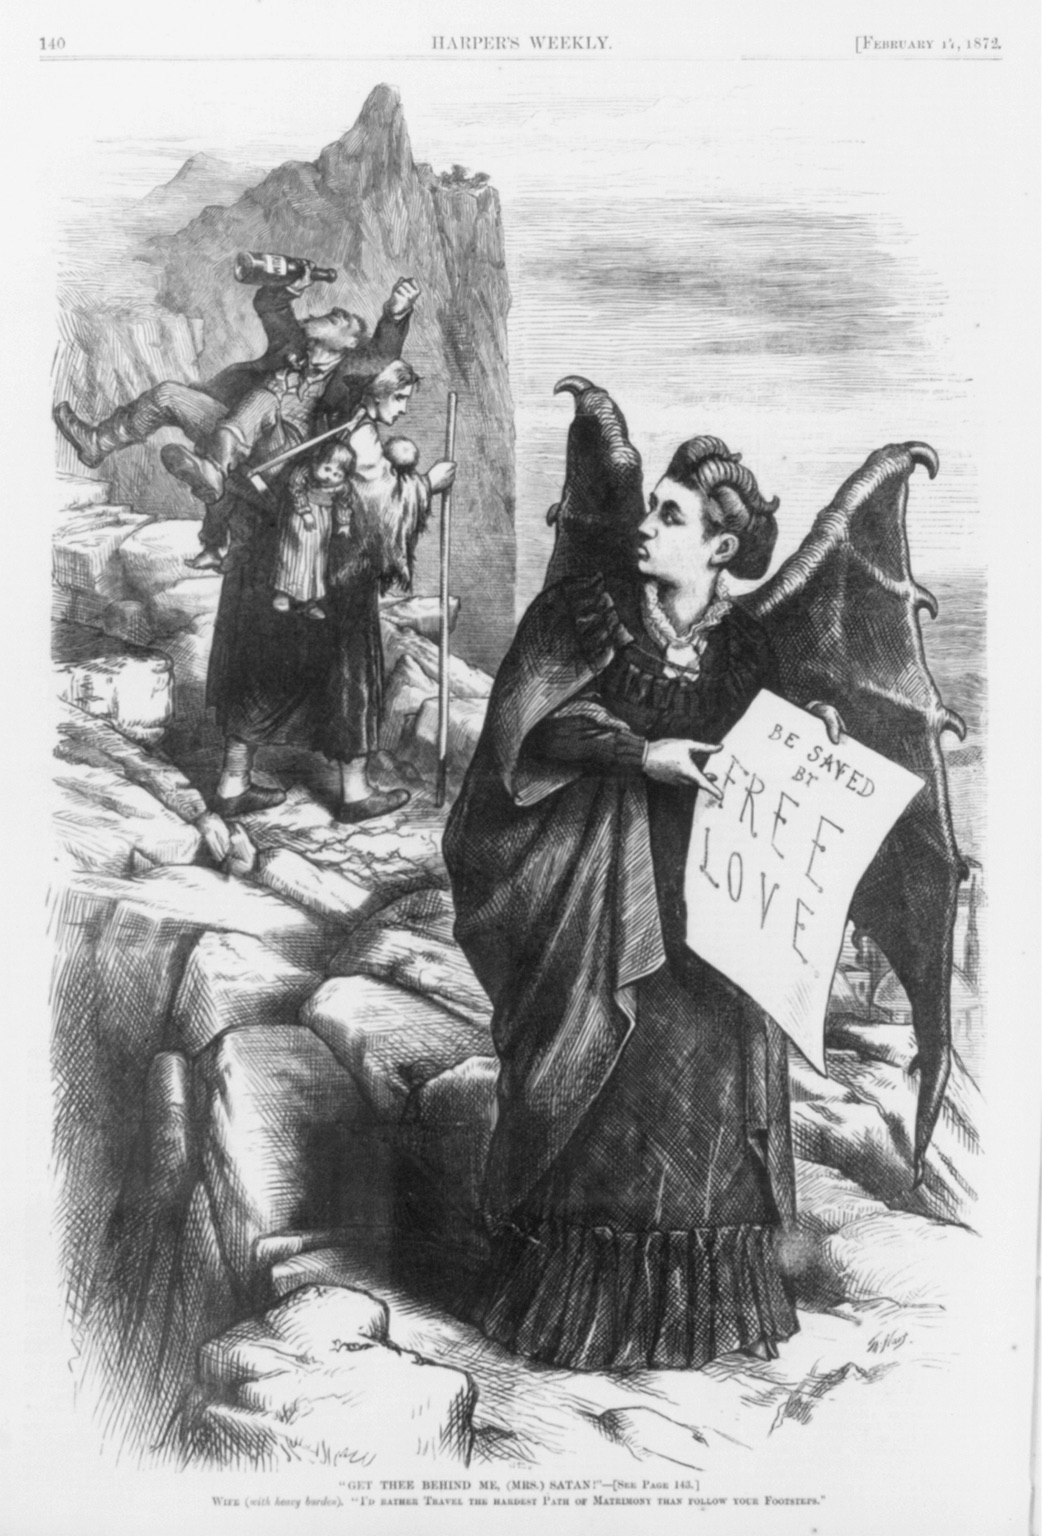 Victorian America found the idea of sex outside the bounds of marriage VERY threatening, and women speaking out about it in public? Yikes. This Harper's Weekly sketch shows the clear Evil Danger of Free Love for women: doesn't that lady with a drunk man and many babies strapped to her back look super sad? And then there's Victoria Woodhull in front, looking sheepish, but fabulous in her horns and devilish wings.    Courtesy of the Library of Congress.